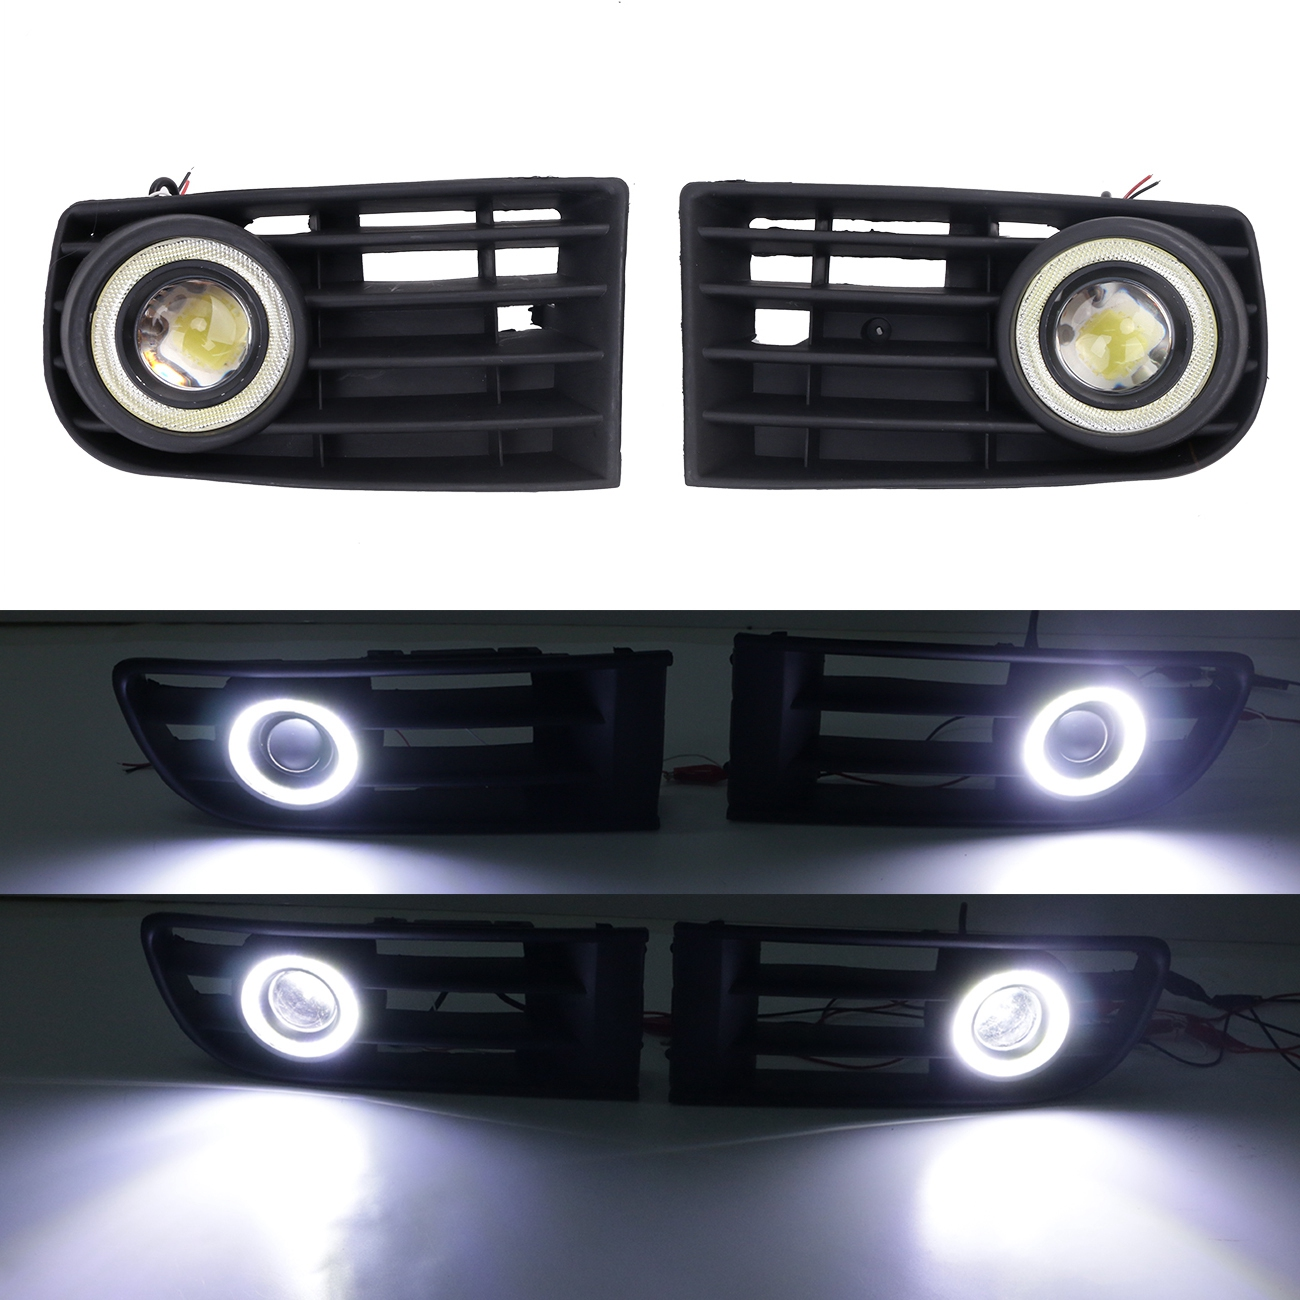 LED Fog Lights Lamp DRL Angel Eyes Front Bumper Grille Kit For VW Golf GL GLS GTI TDI Mk5 Rabbit 2003 - 2009 #P363 wisengear front bumper grille fog light angel eyes led lamp with wiring switch kit for mitsubishi lancer 2008 2015 c 5